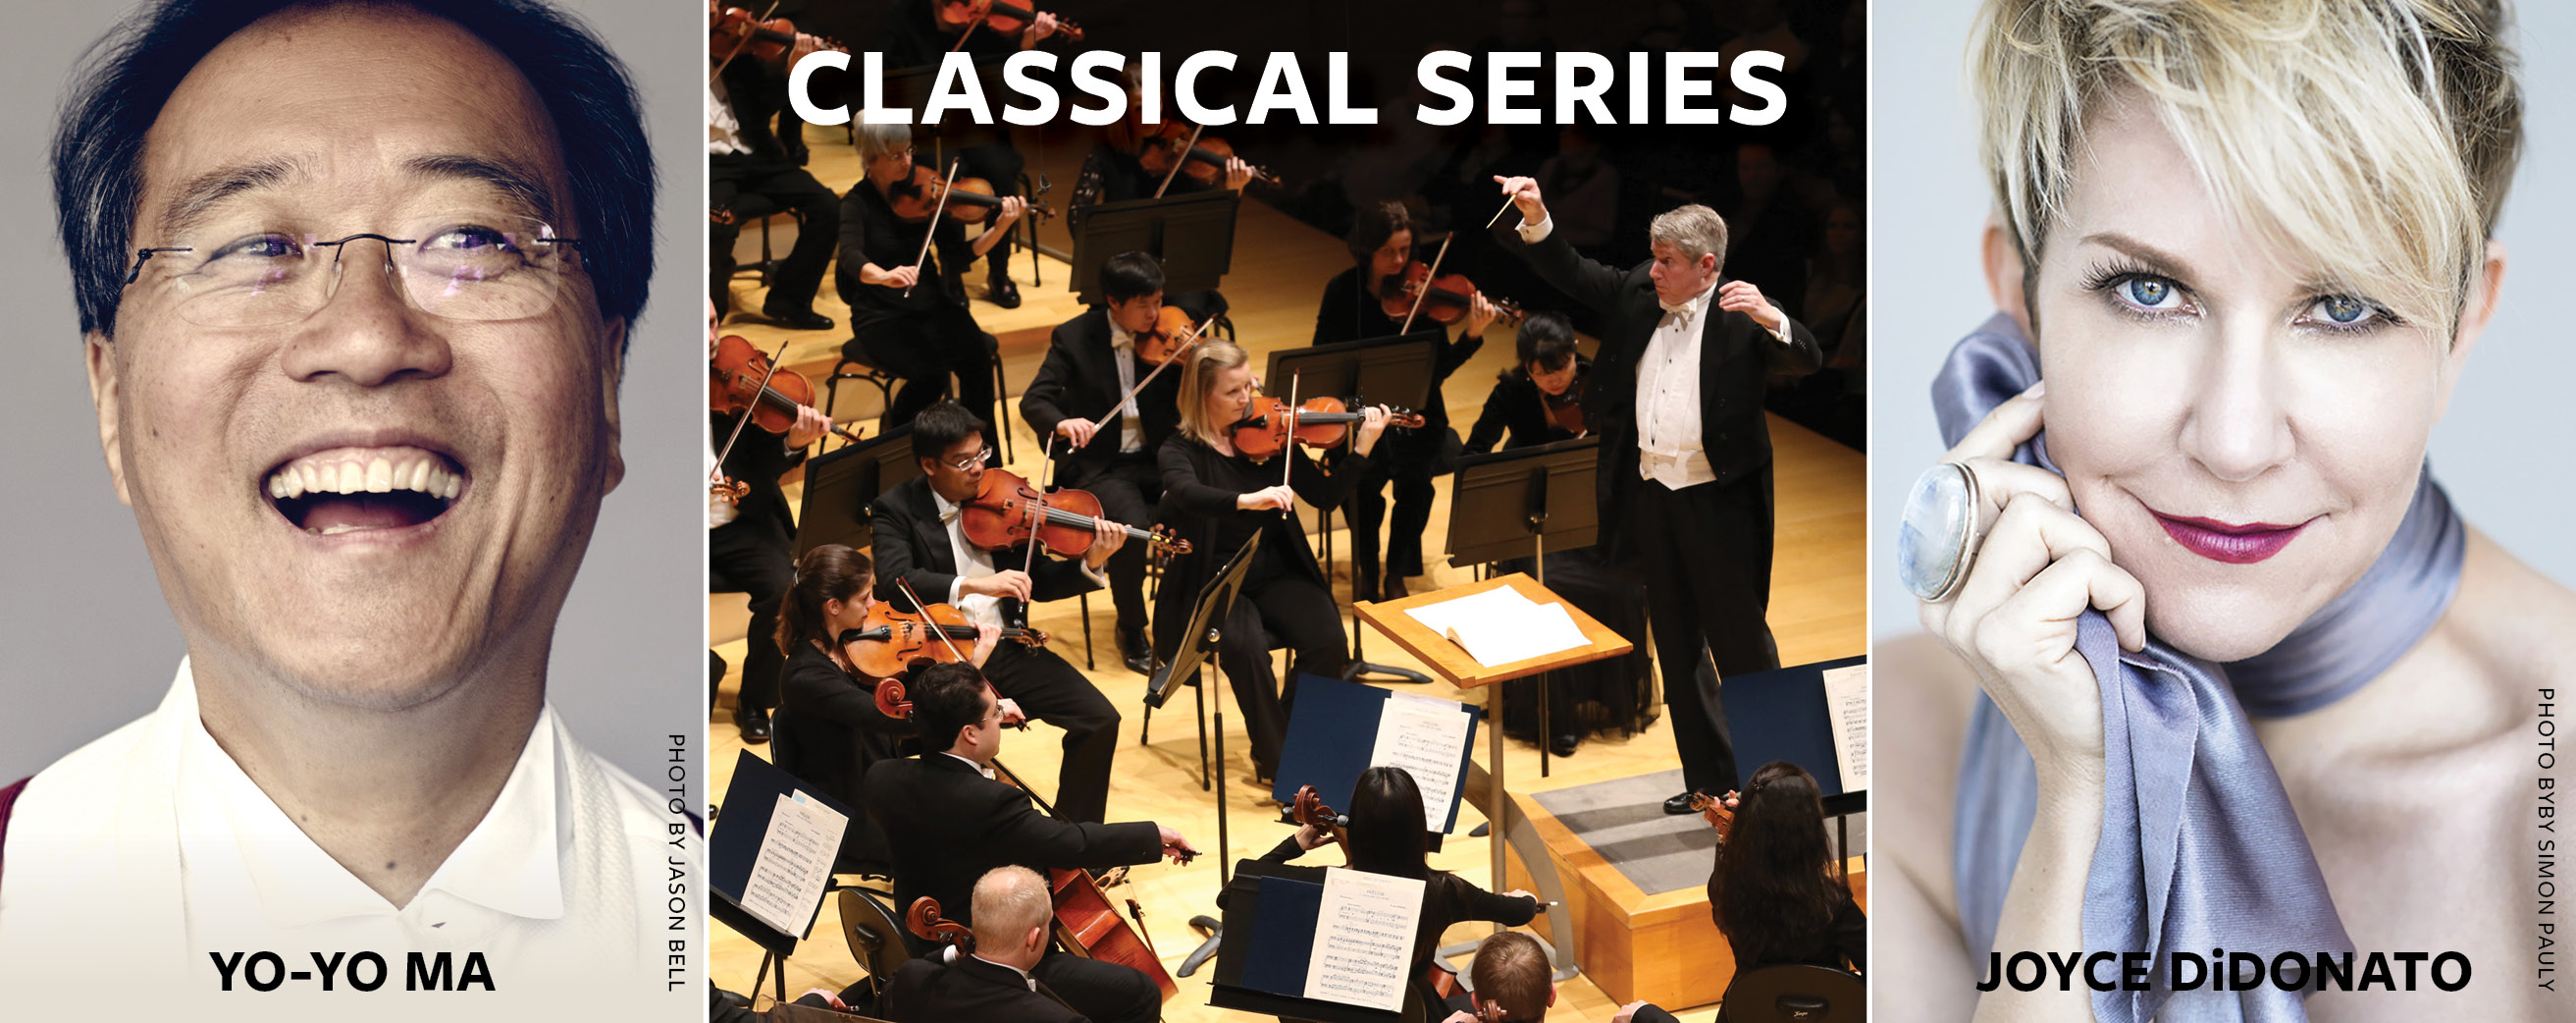 Kansas City Symphony Classical Series